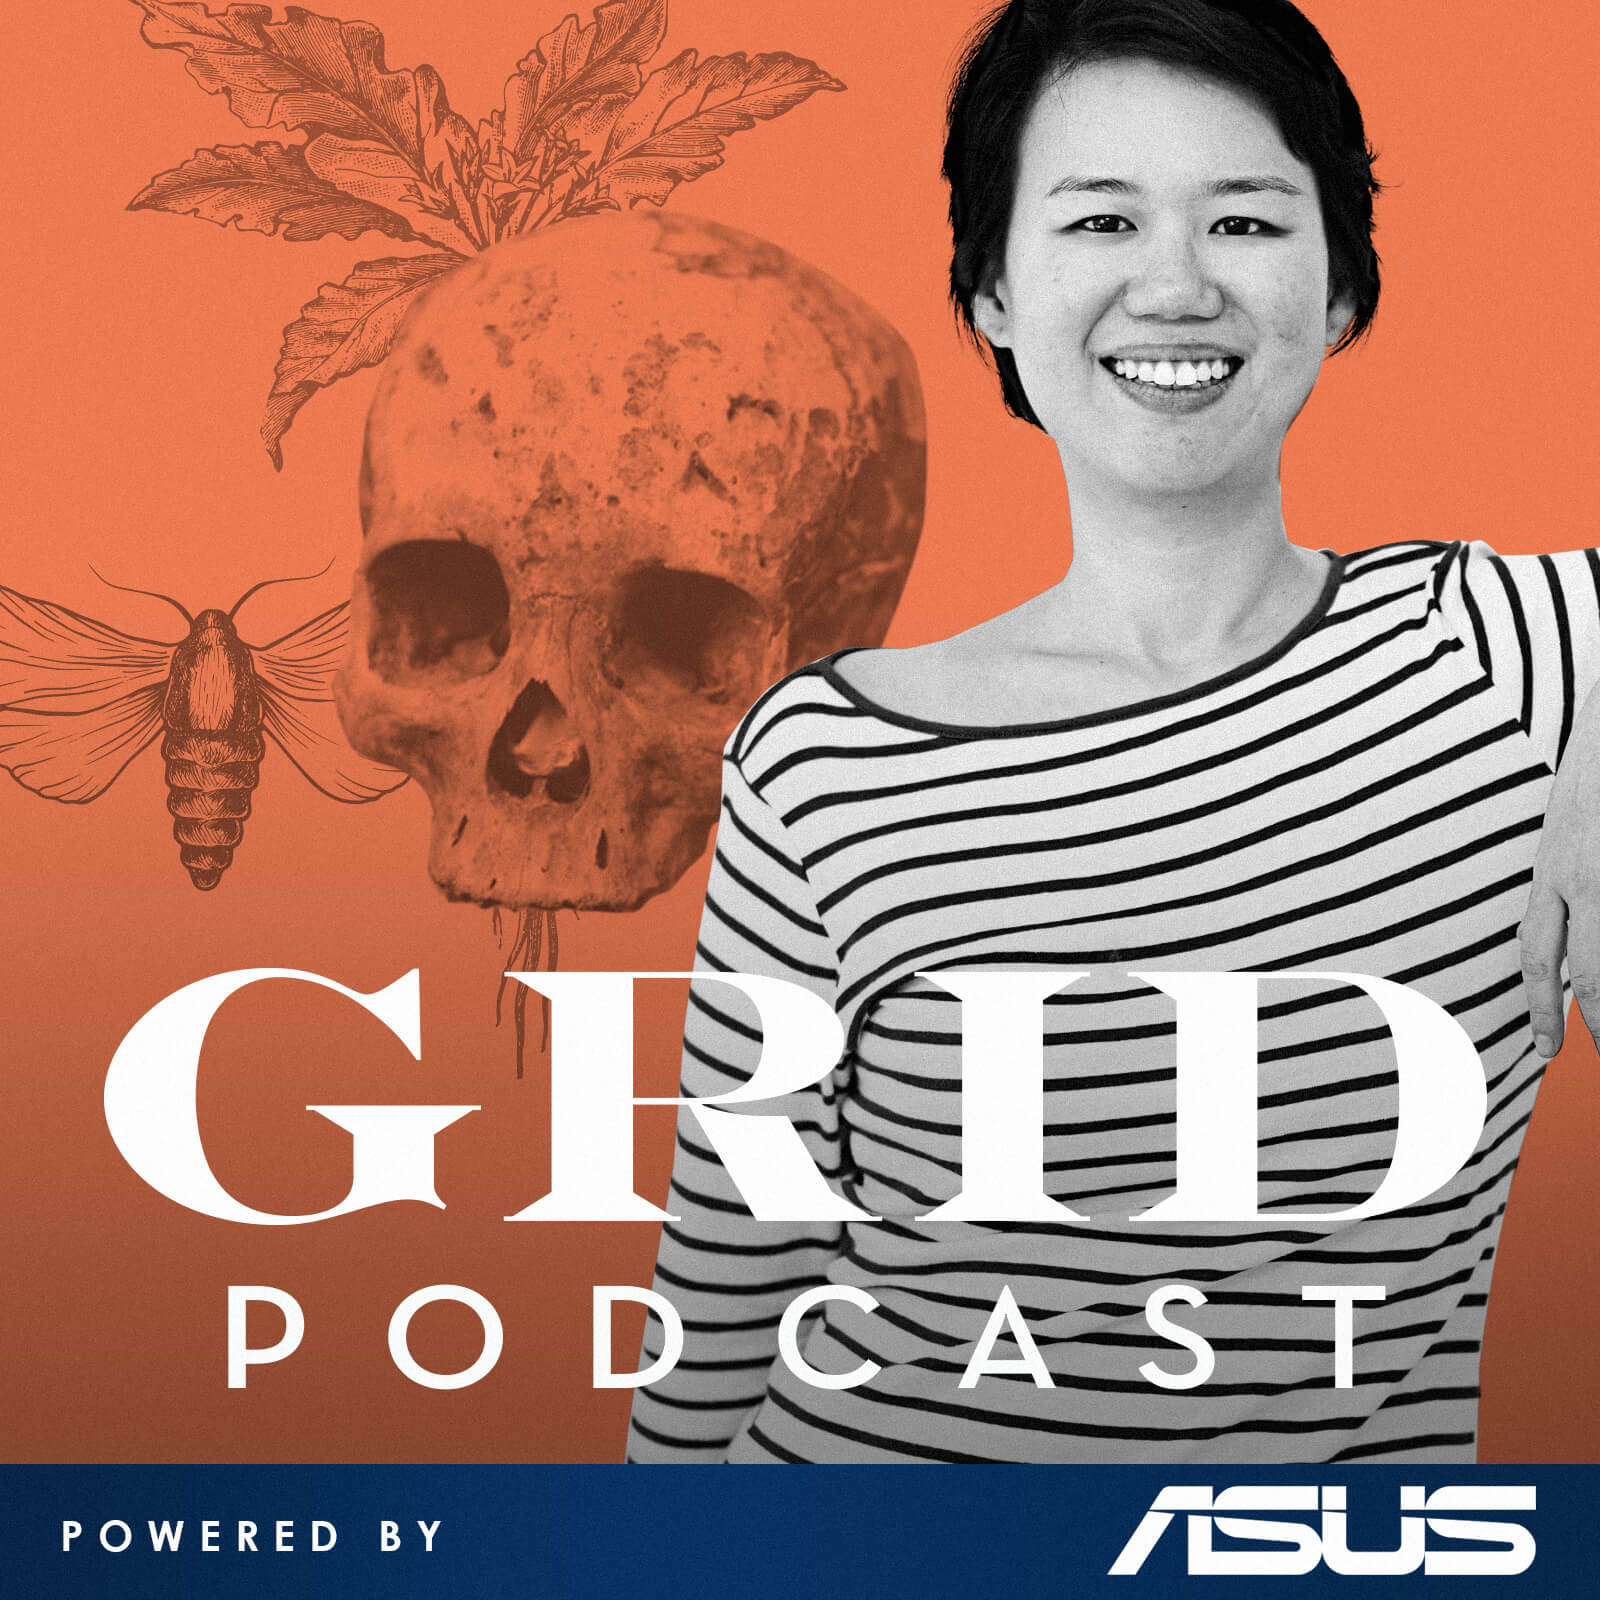 Team GRID and horror author Yvette Tan swap scary stories, debate if spirits live among us, and share tips on surviving a night in a haunted hotel.